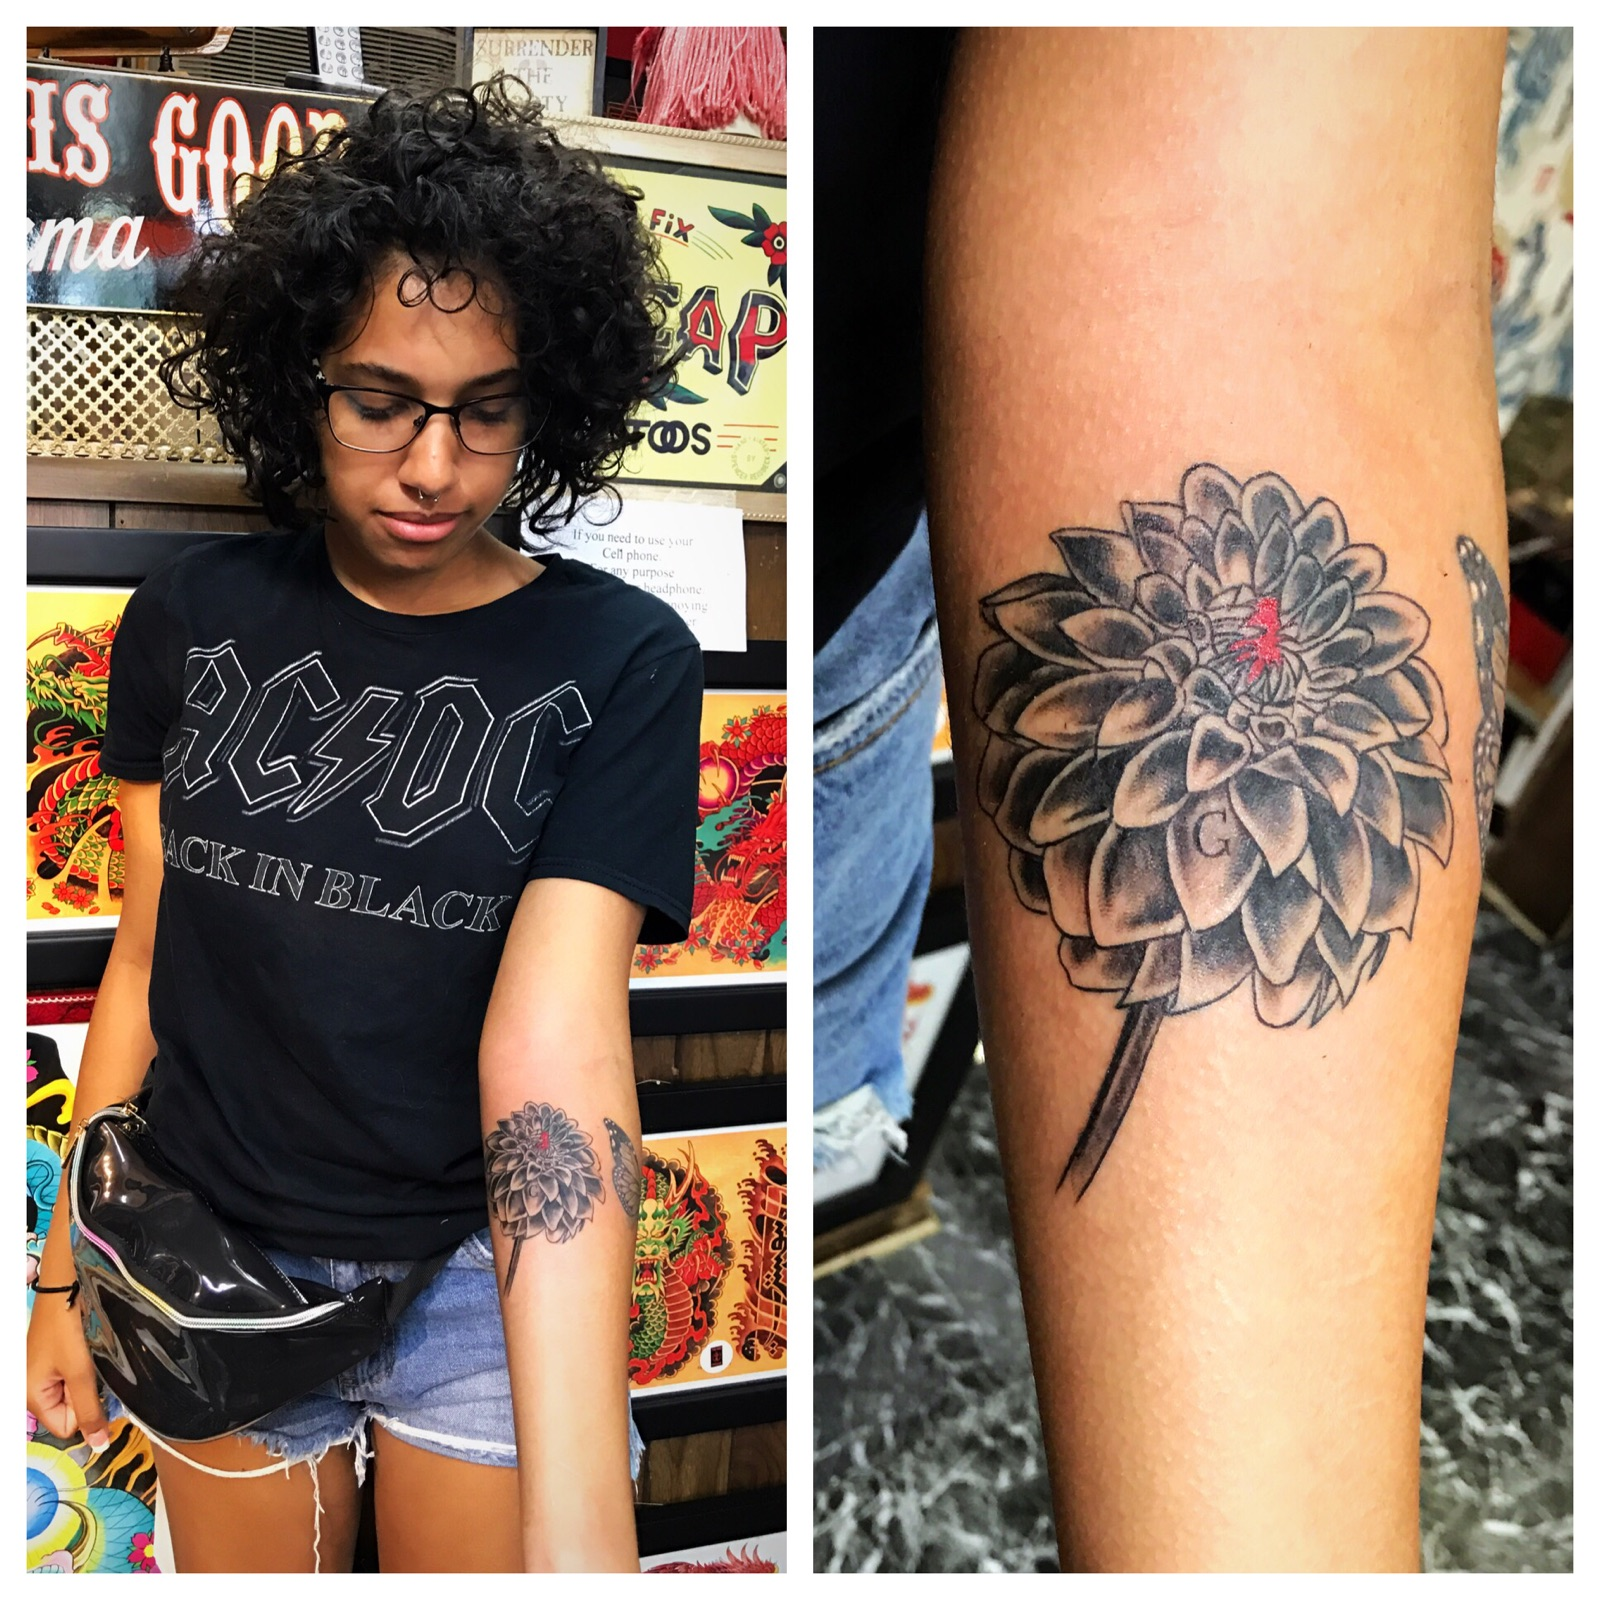 Dalia Flower Tattoo The Red Parlour Tatt